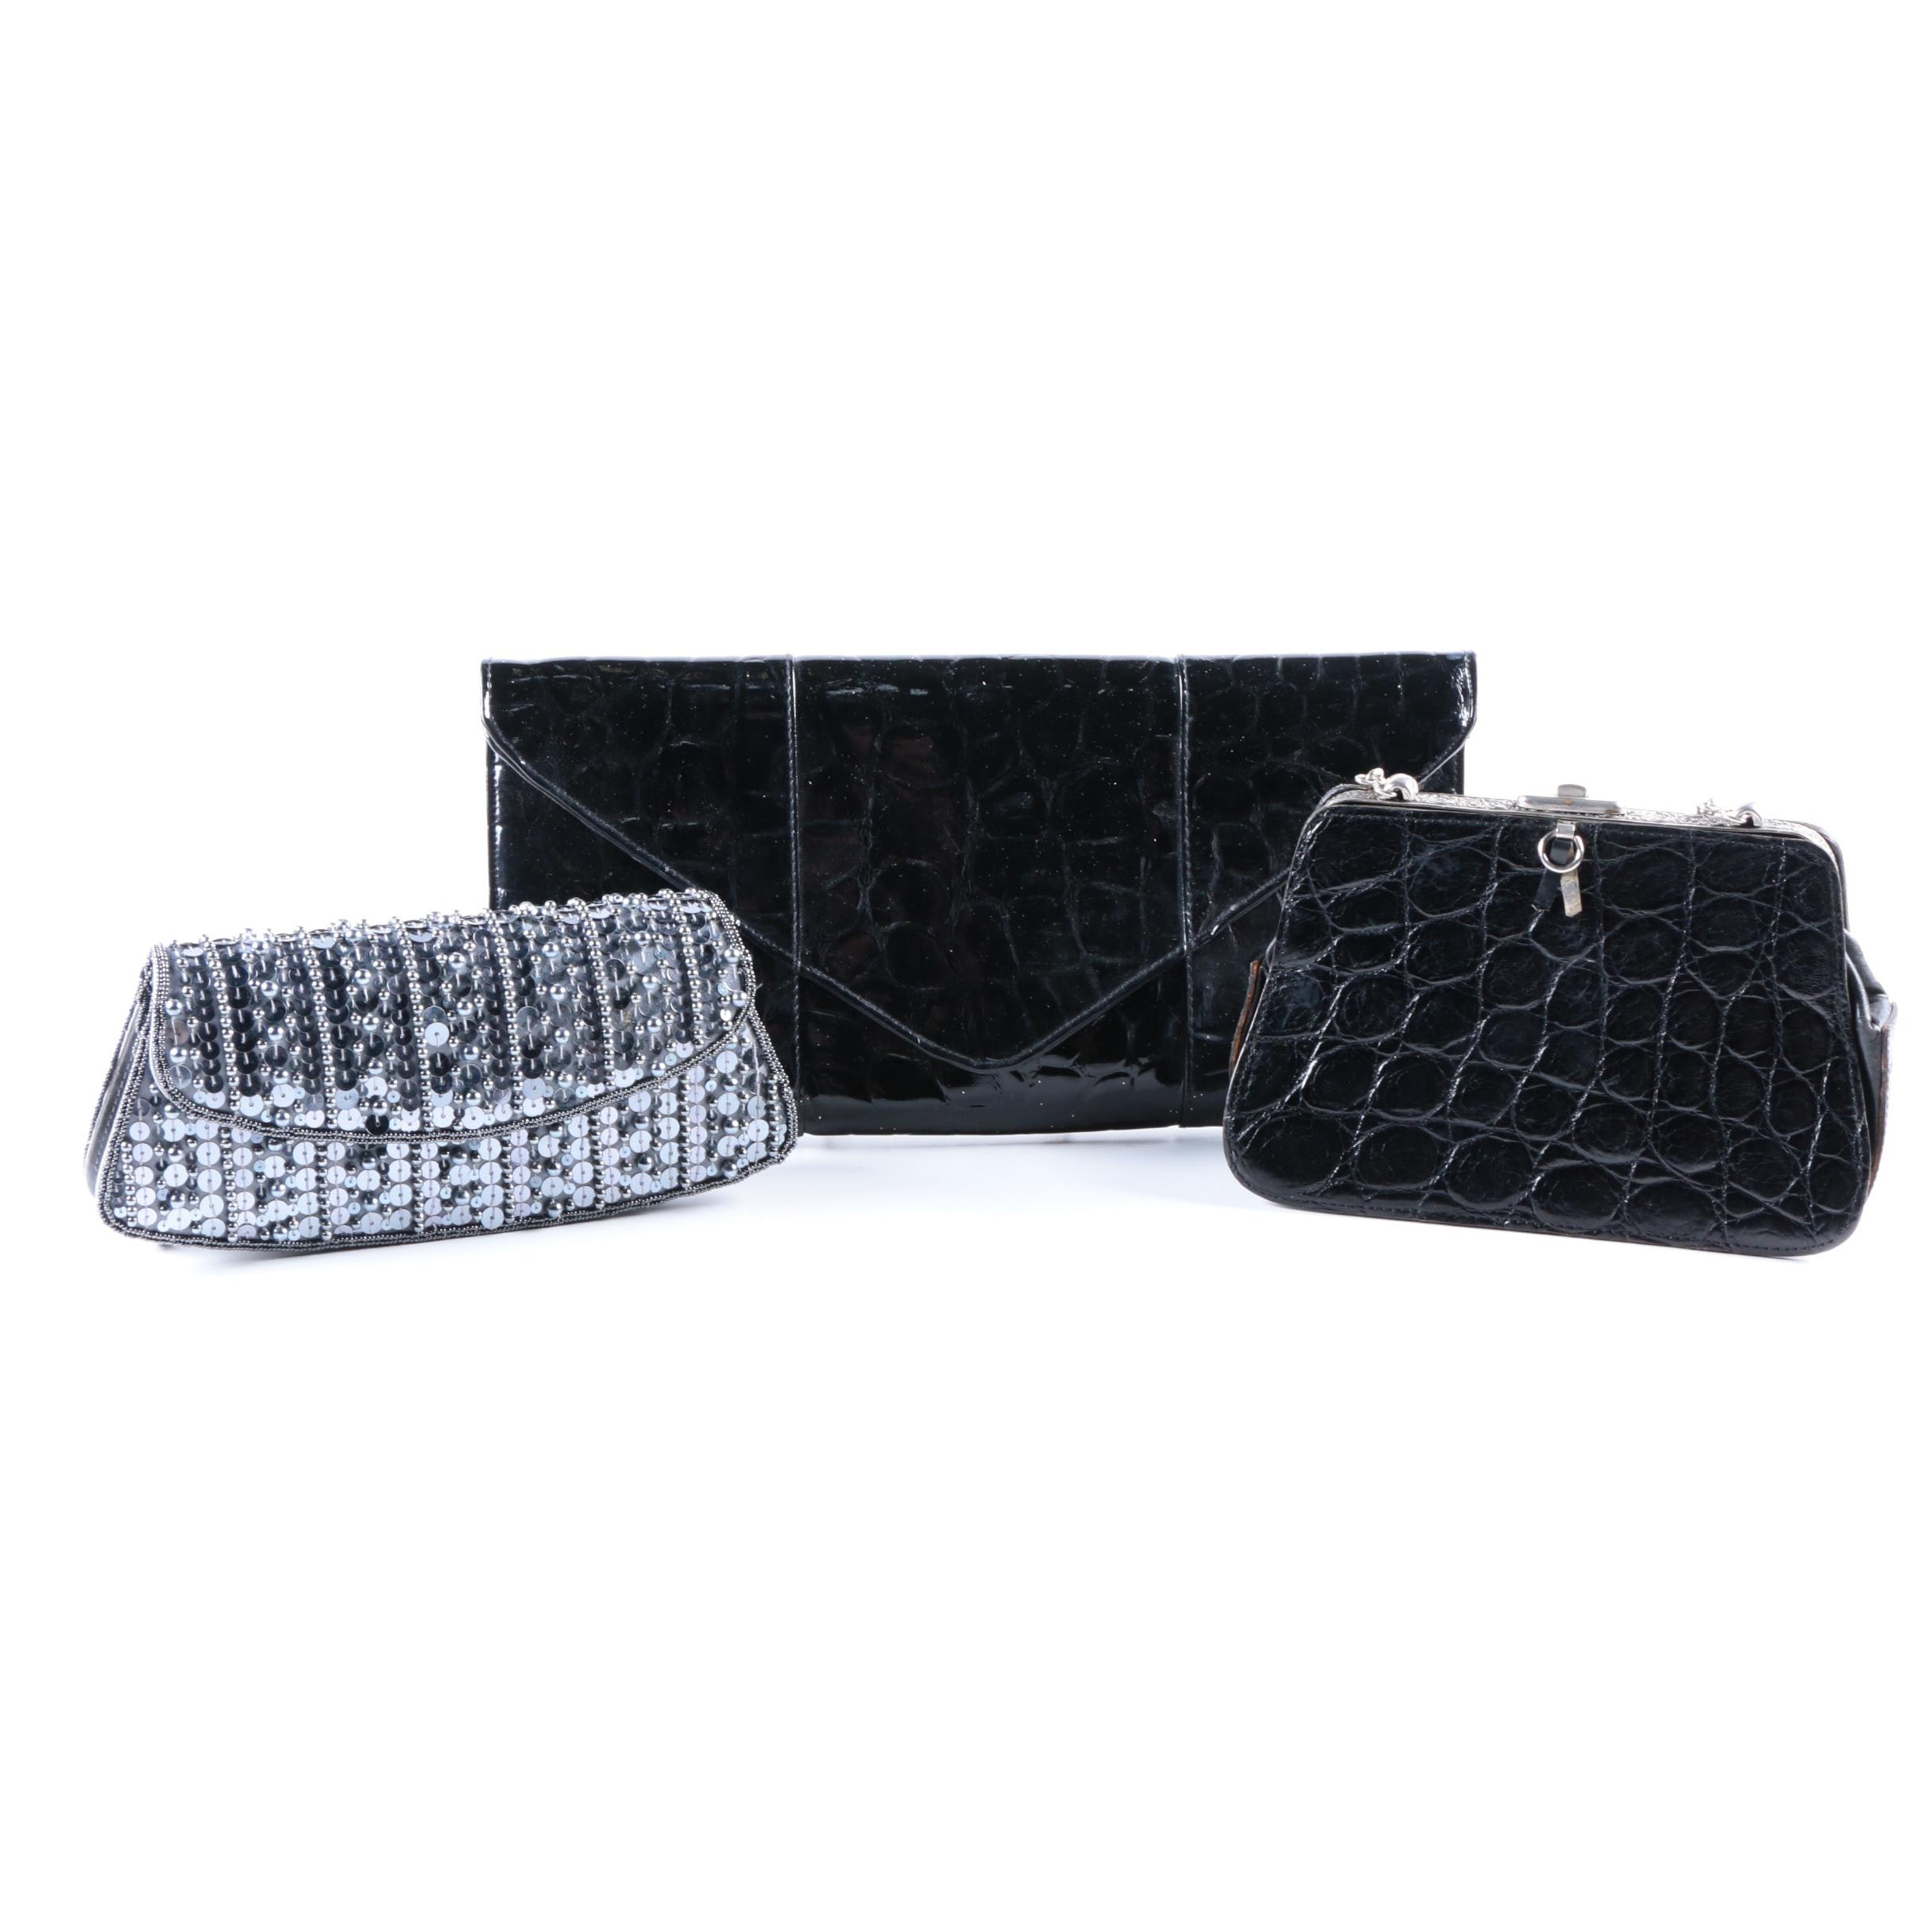 Embellished and Embossed Leather Occasion Handbags